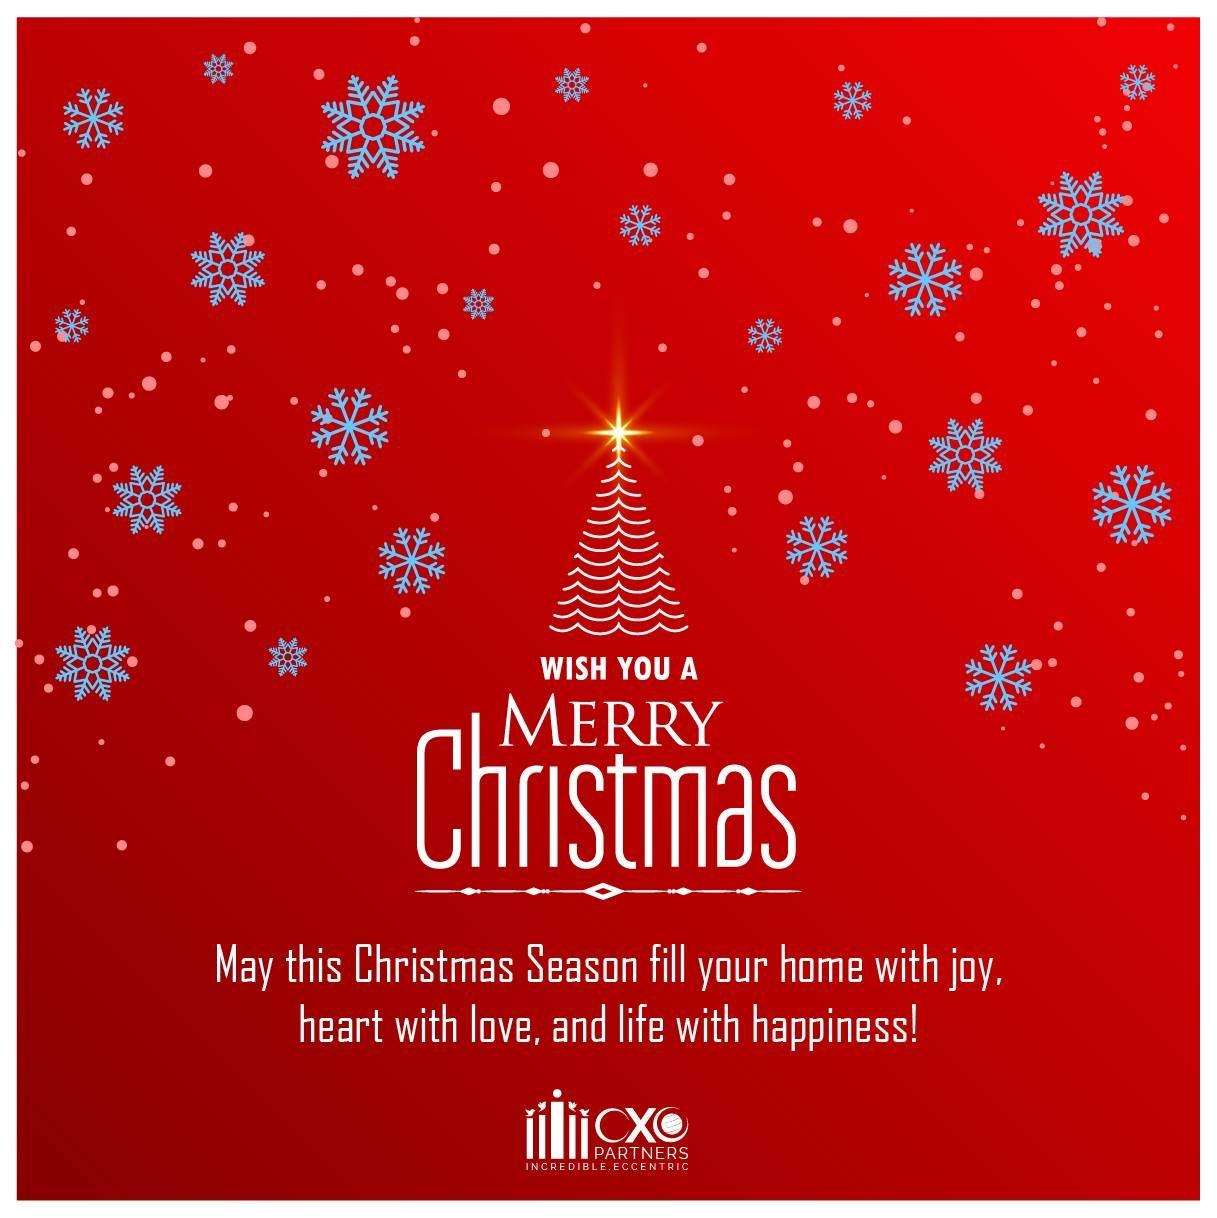 CXO Partners wishes you and your loved ones a Merry and